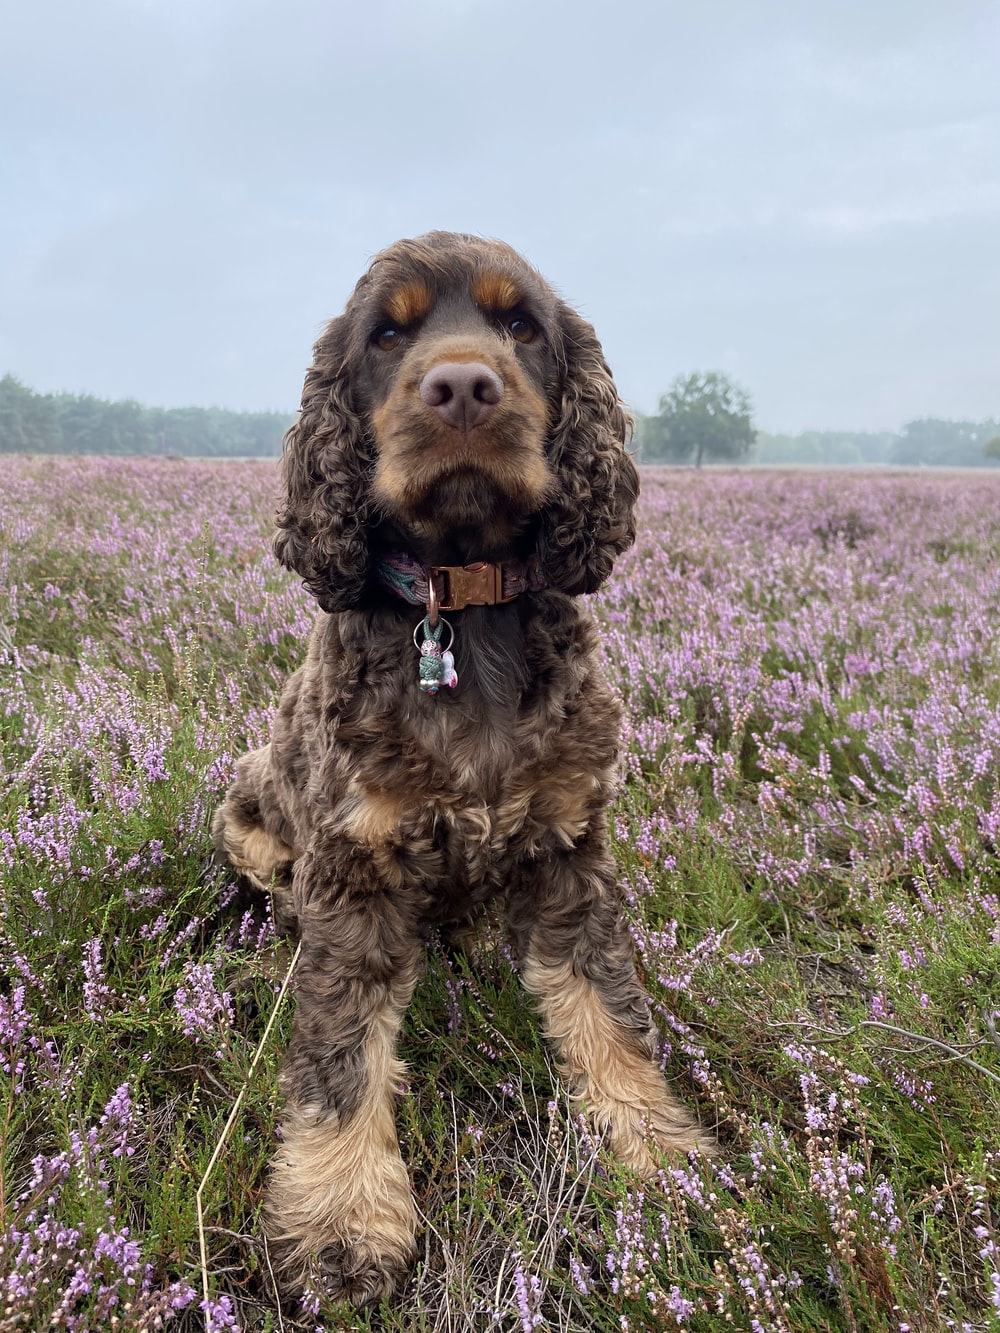 brown and black long coated dog on purple flower field during daytime